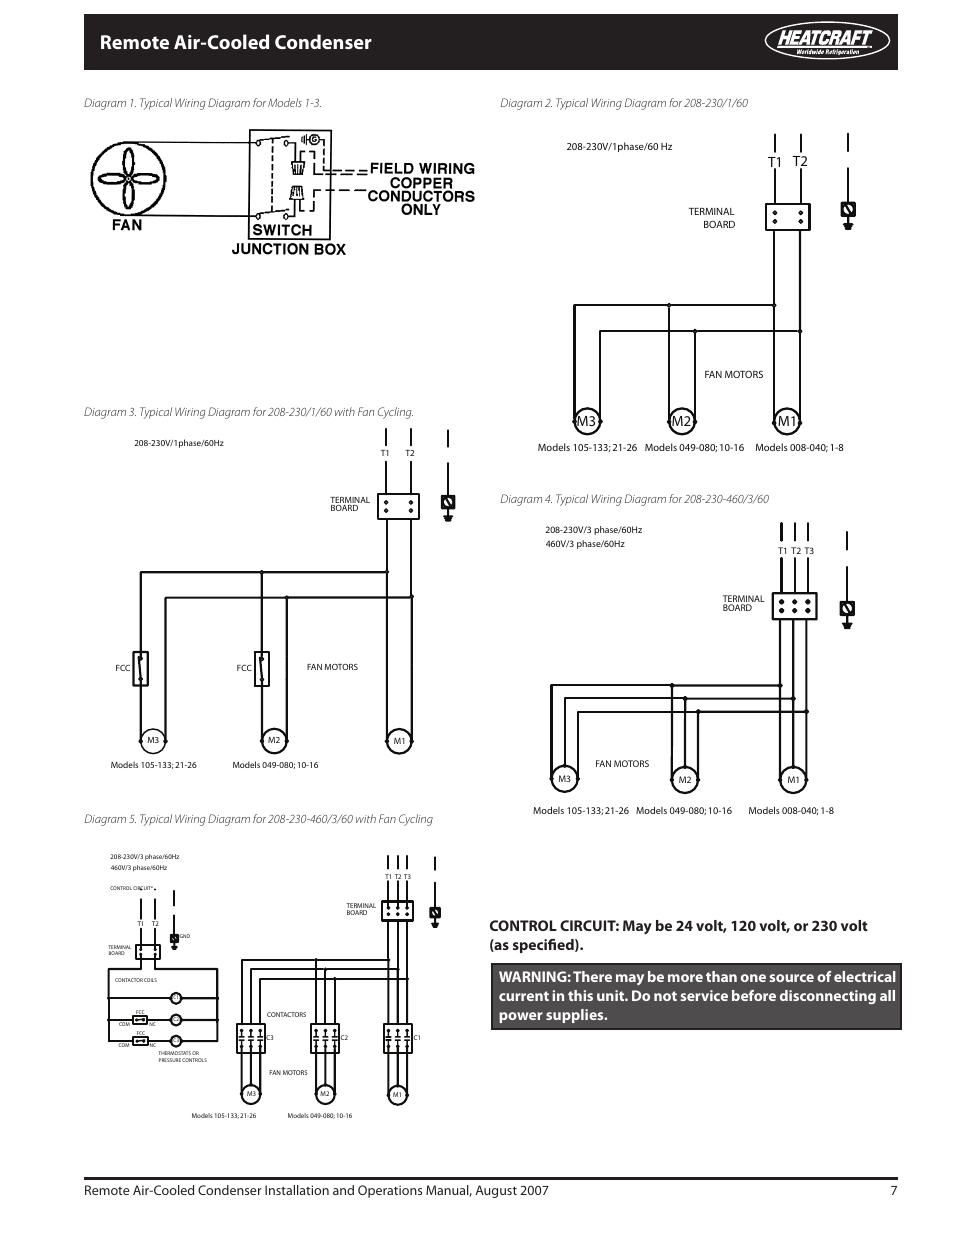 Typical Refrigerator Wiring Diagram Image collections